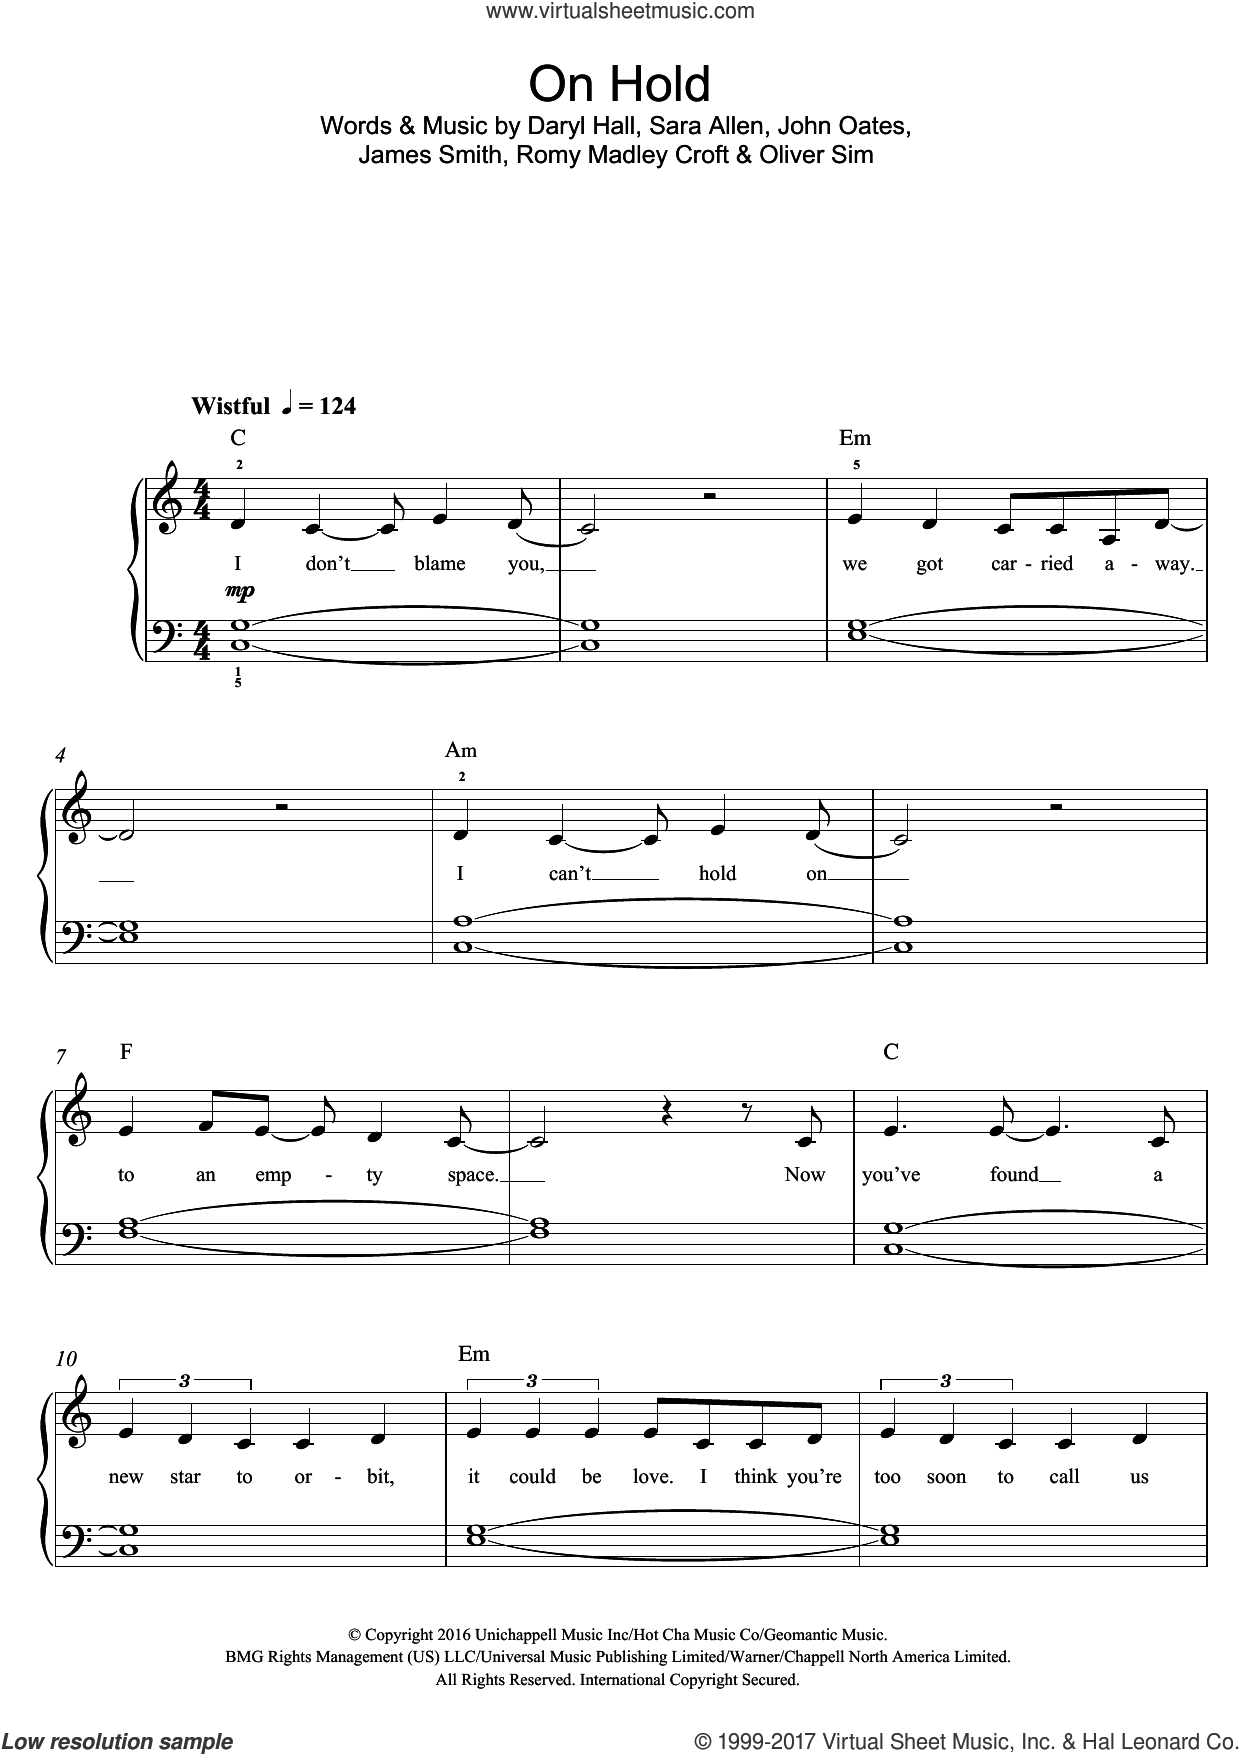 On Hold sheet music for piano solo (beginners) by The XX, Daryl Hall, James Smith, John Oates, Oliver Sim, Romy Madley Croft and Sara Allen, beginner piano (beginners)